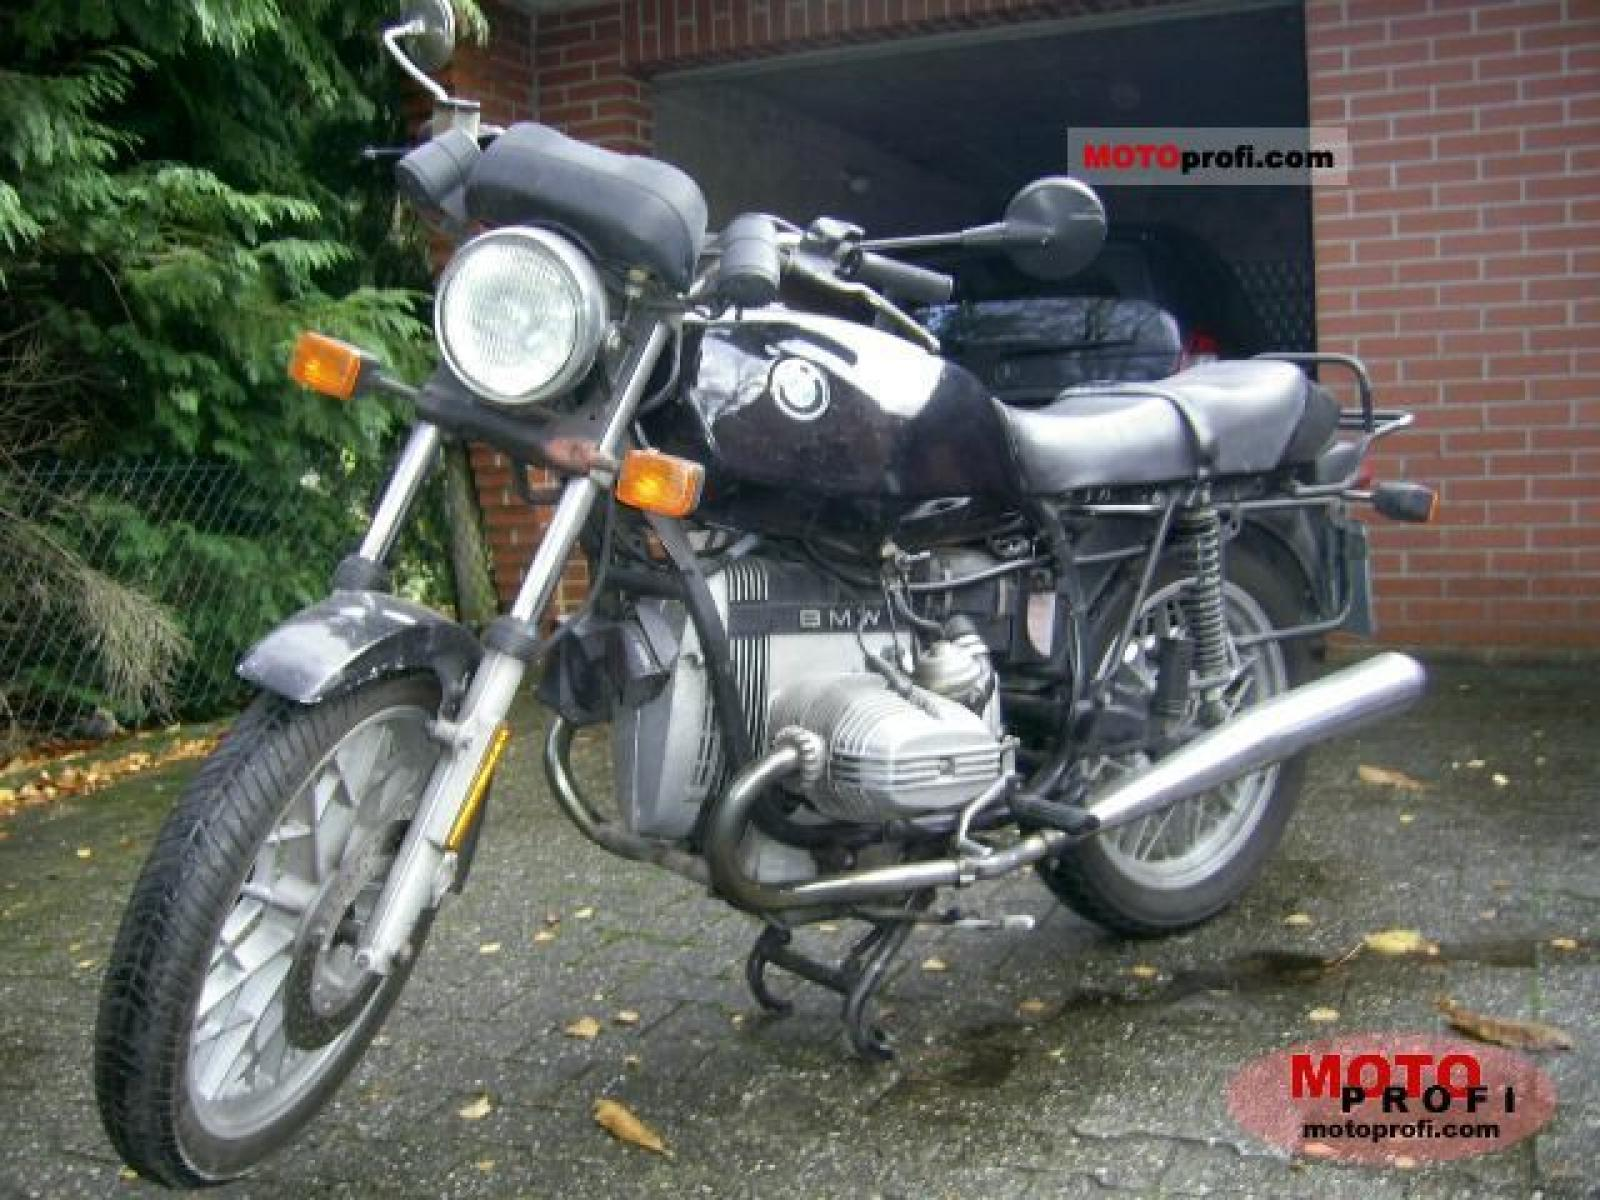 BMW R65 (reduced effect) 1988 images #77195